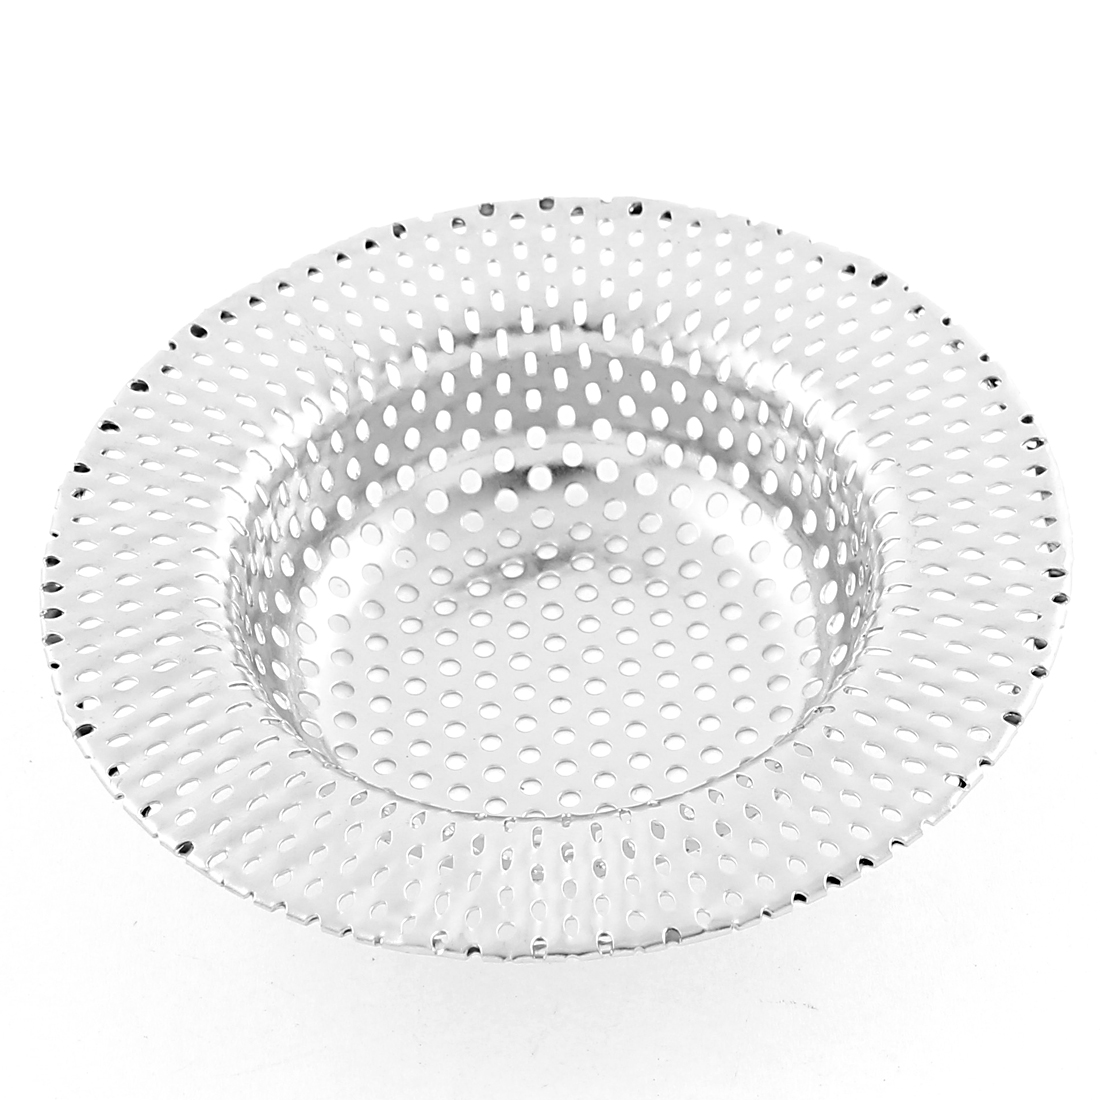 Kitchen Drain Dopant Sink Waste Disposer Mesh Net Basin Strainer